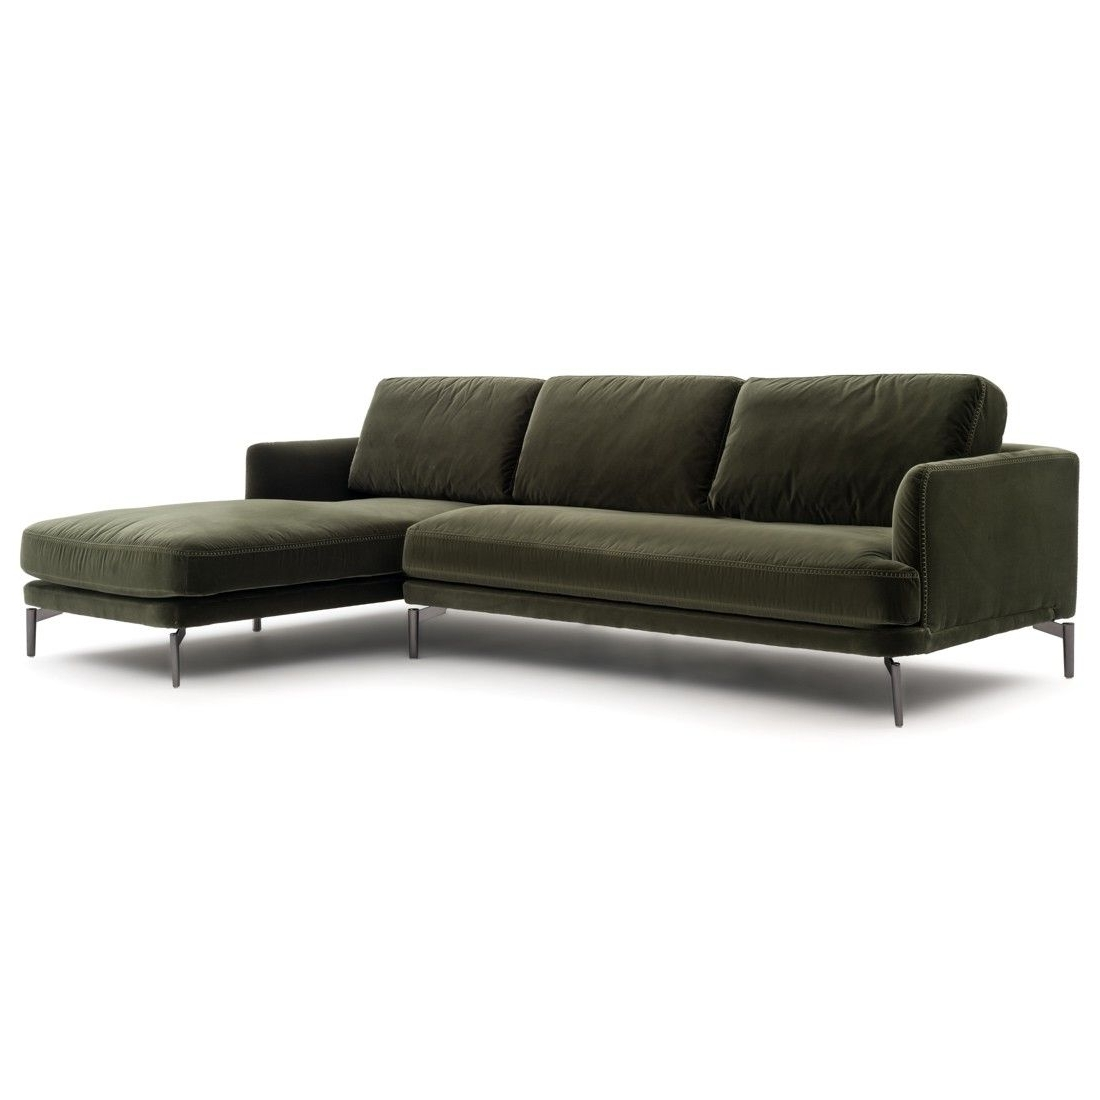 Popular Mobilia Sectional Sofas For Sectionals – Narnia (View 2 of 20)